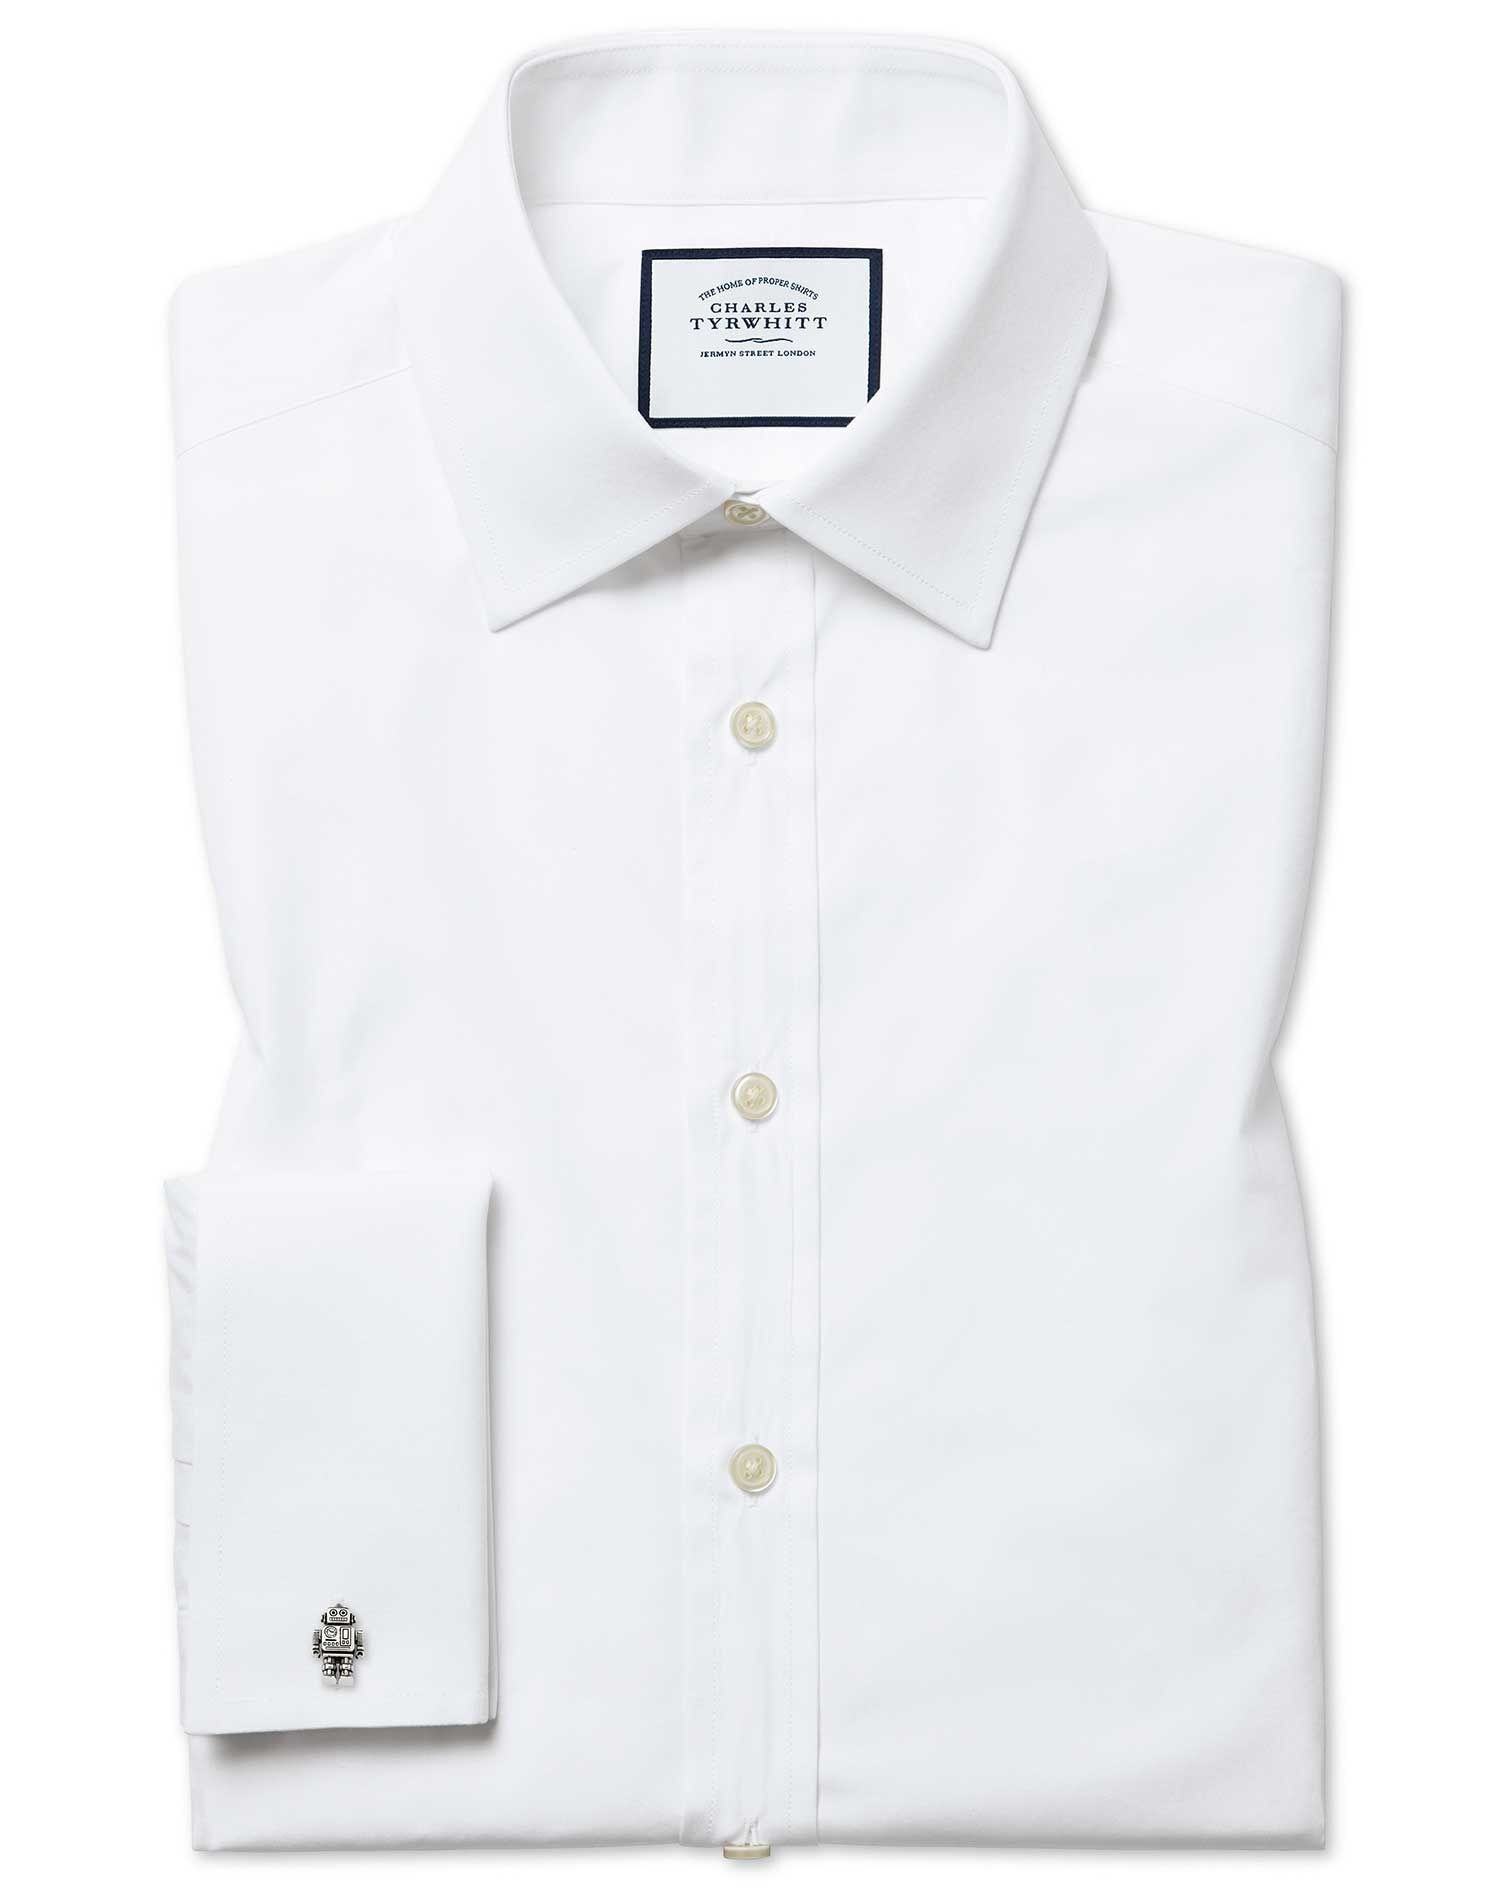 Slim Fit Egyptian Cotton Poplin White Formal Shirt Single Cuff Size 16/38 by Charles Tyrwhitt